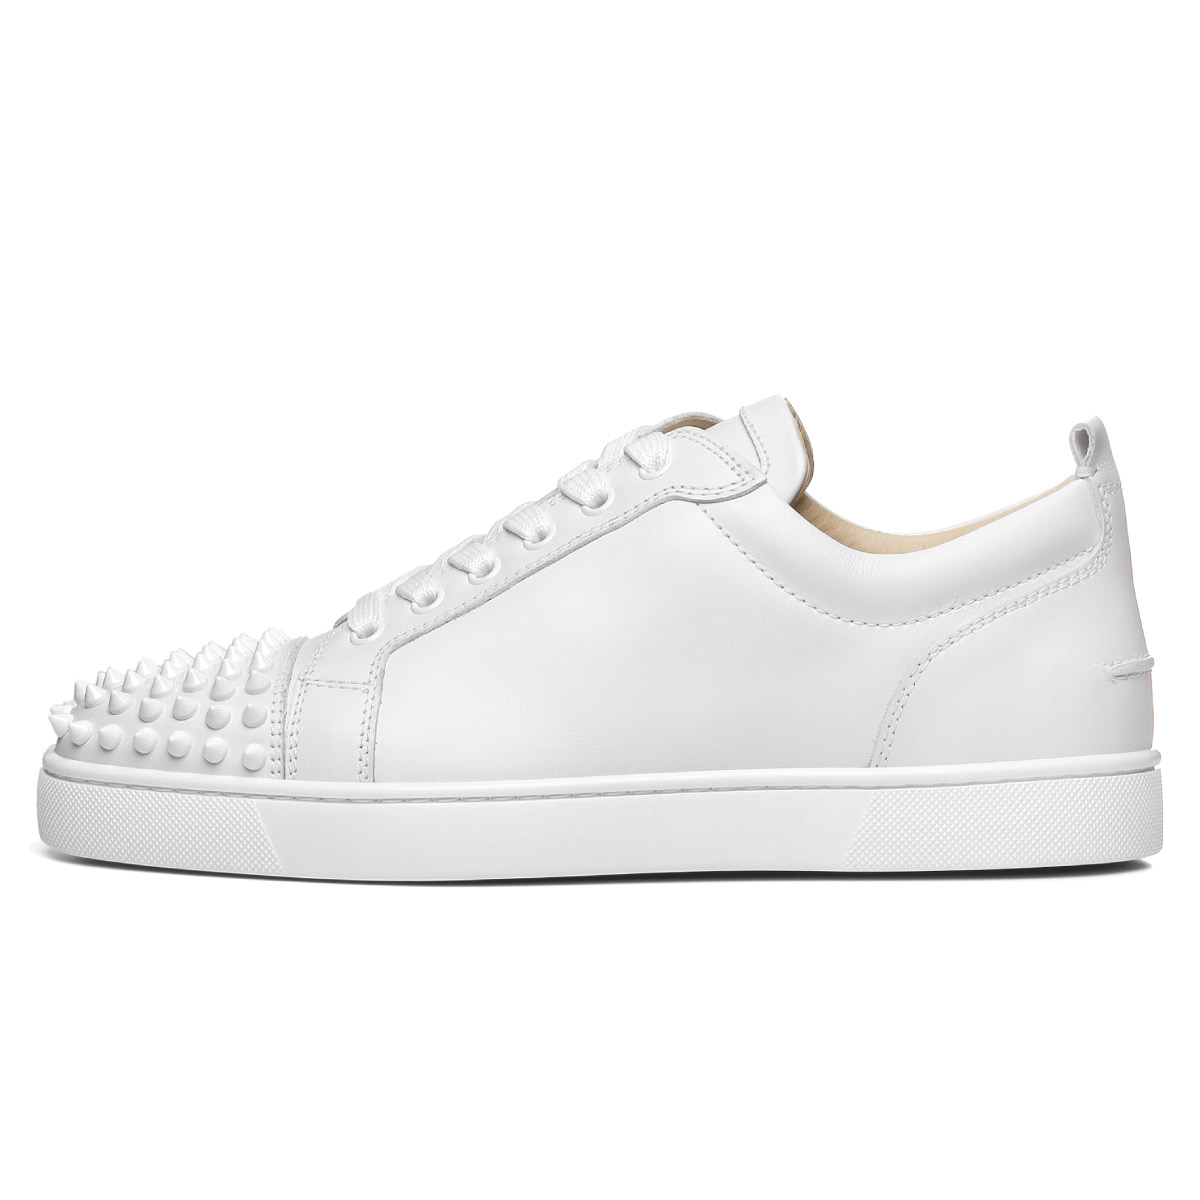 best website abf98 585fc 1130573 クリスチャンルブタン Christian Louboutin shoes men 3047 sneakers LOUIS JUNIOR  SPIKES FLAT Lewis Junius pike staple fiber rat WHITE/WHITE white